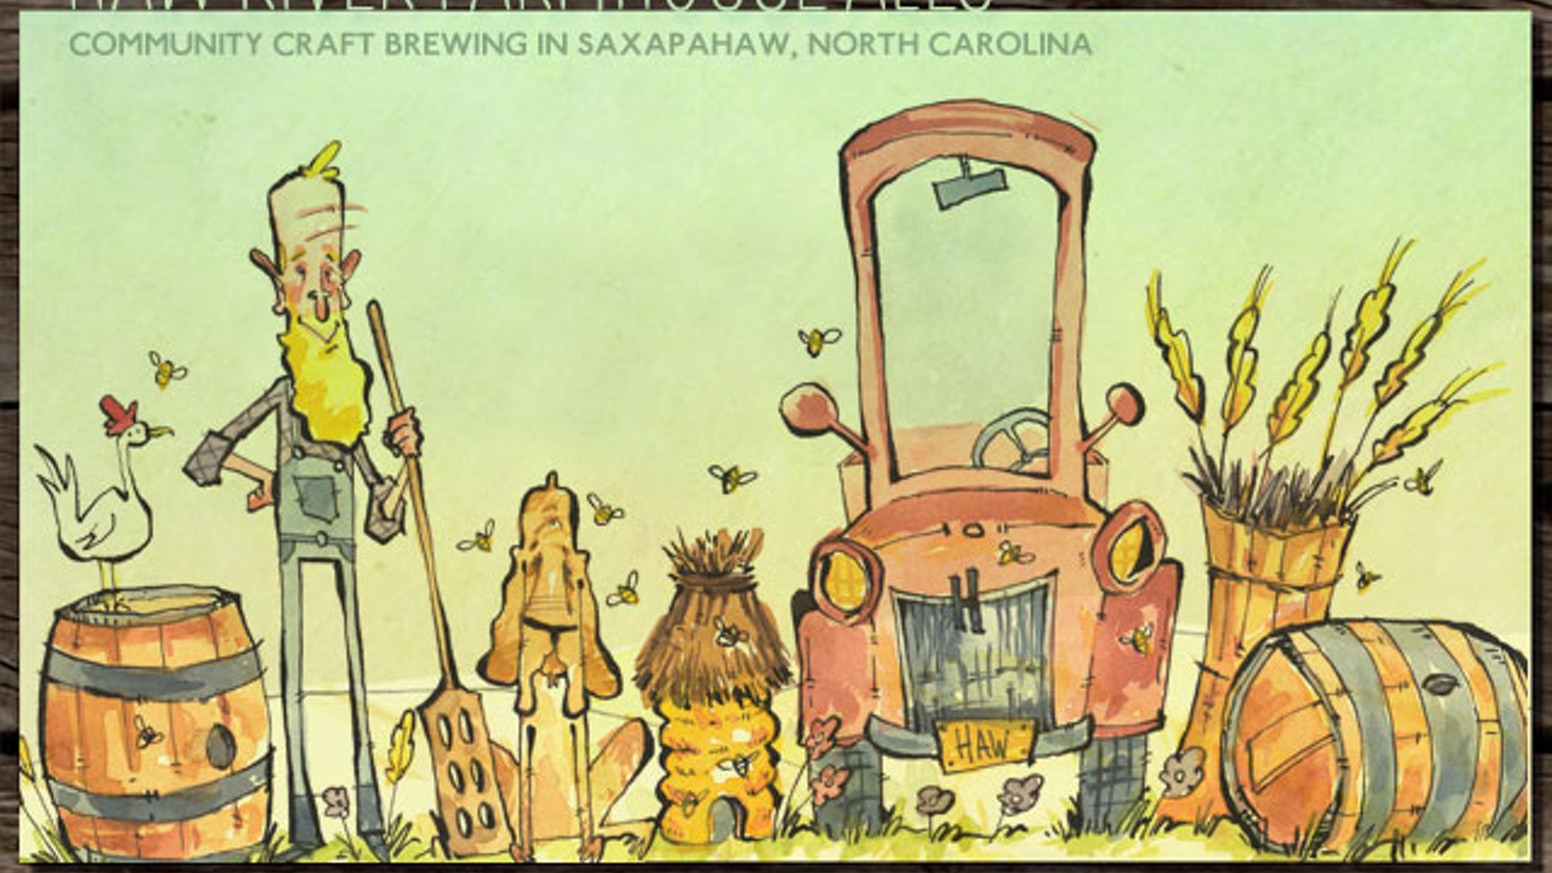 Haw River Farmhouse Ales  Craft Brewing in Rural NC by Ben Woodward ... e3ea25575